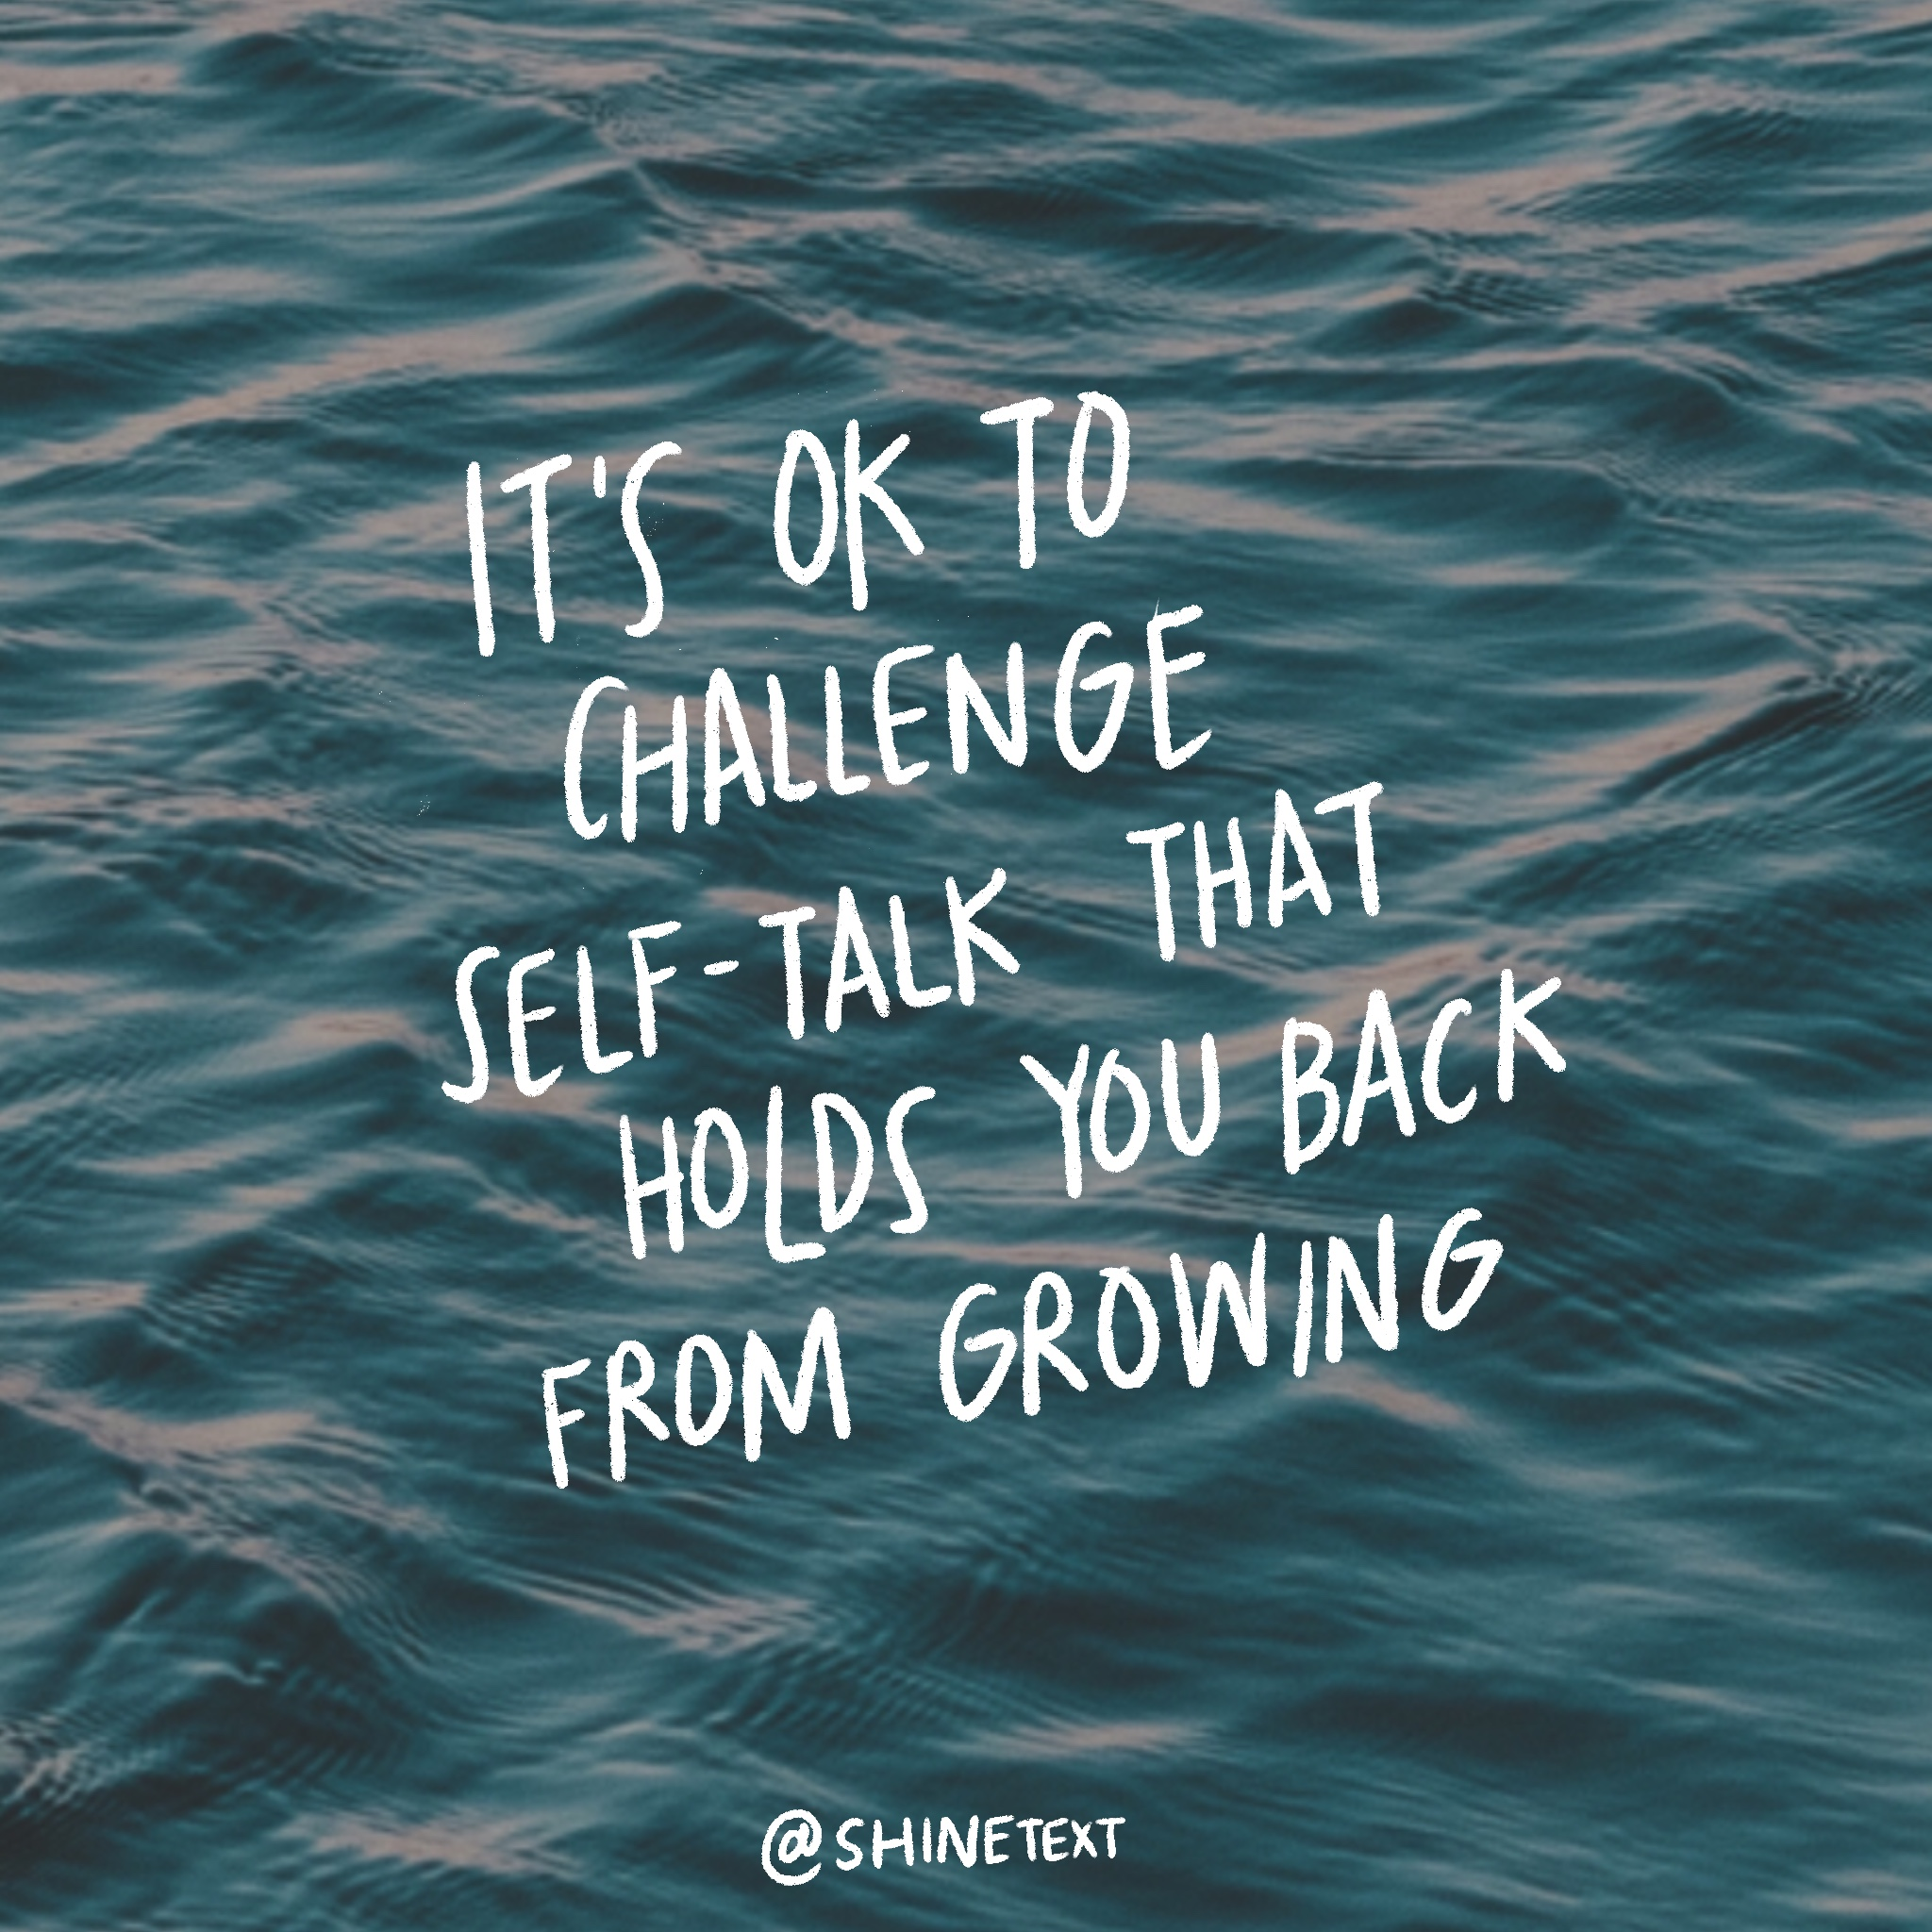 It's OK to challenge self-talk that holds you back from growing.